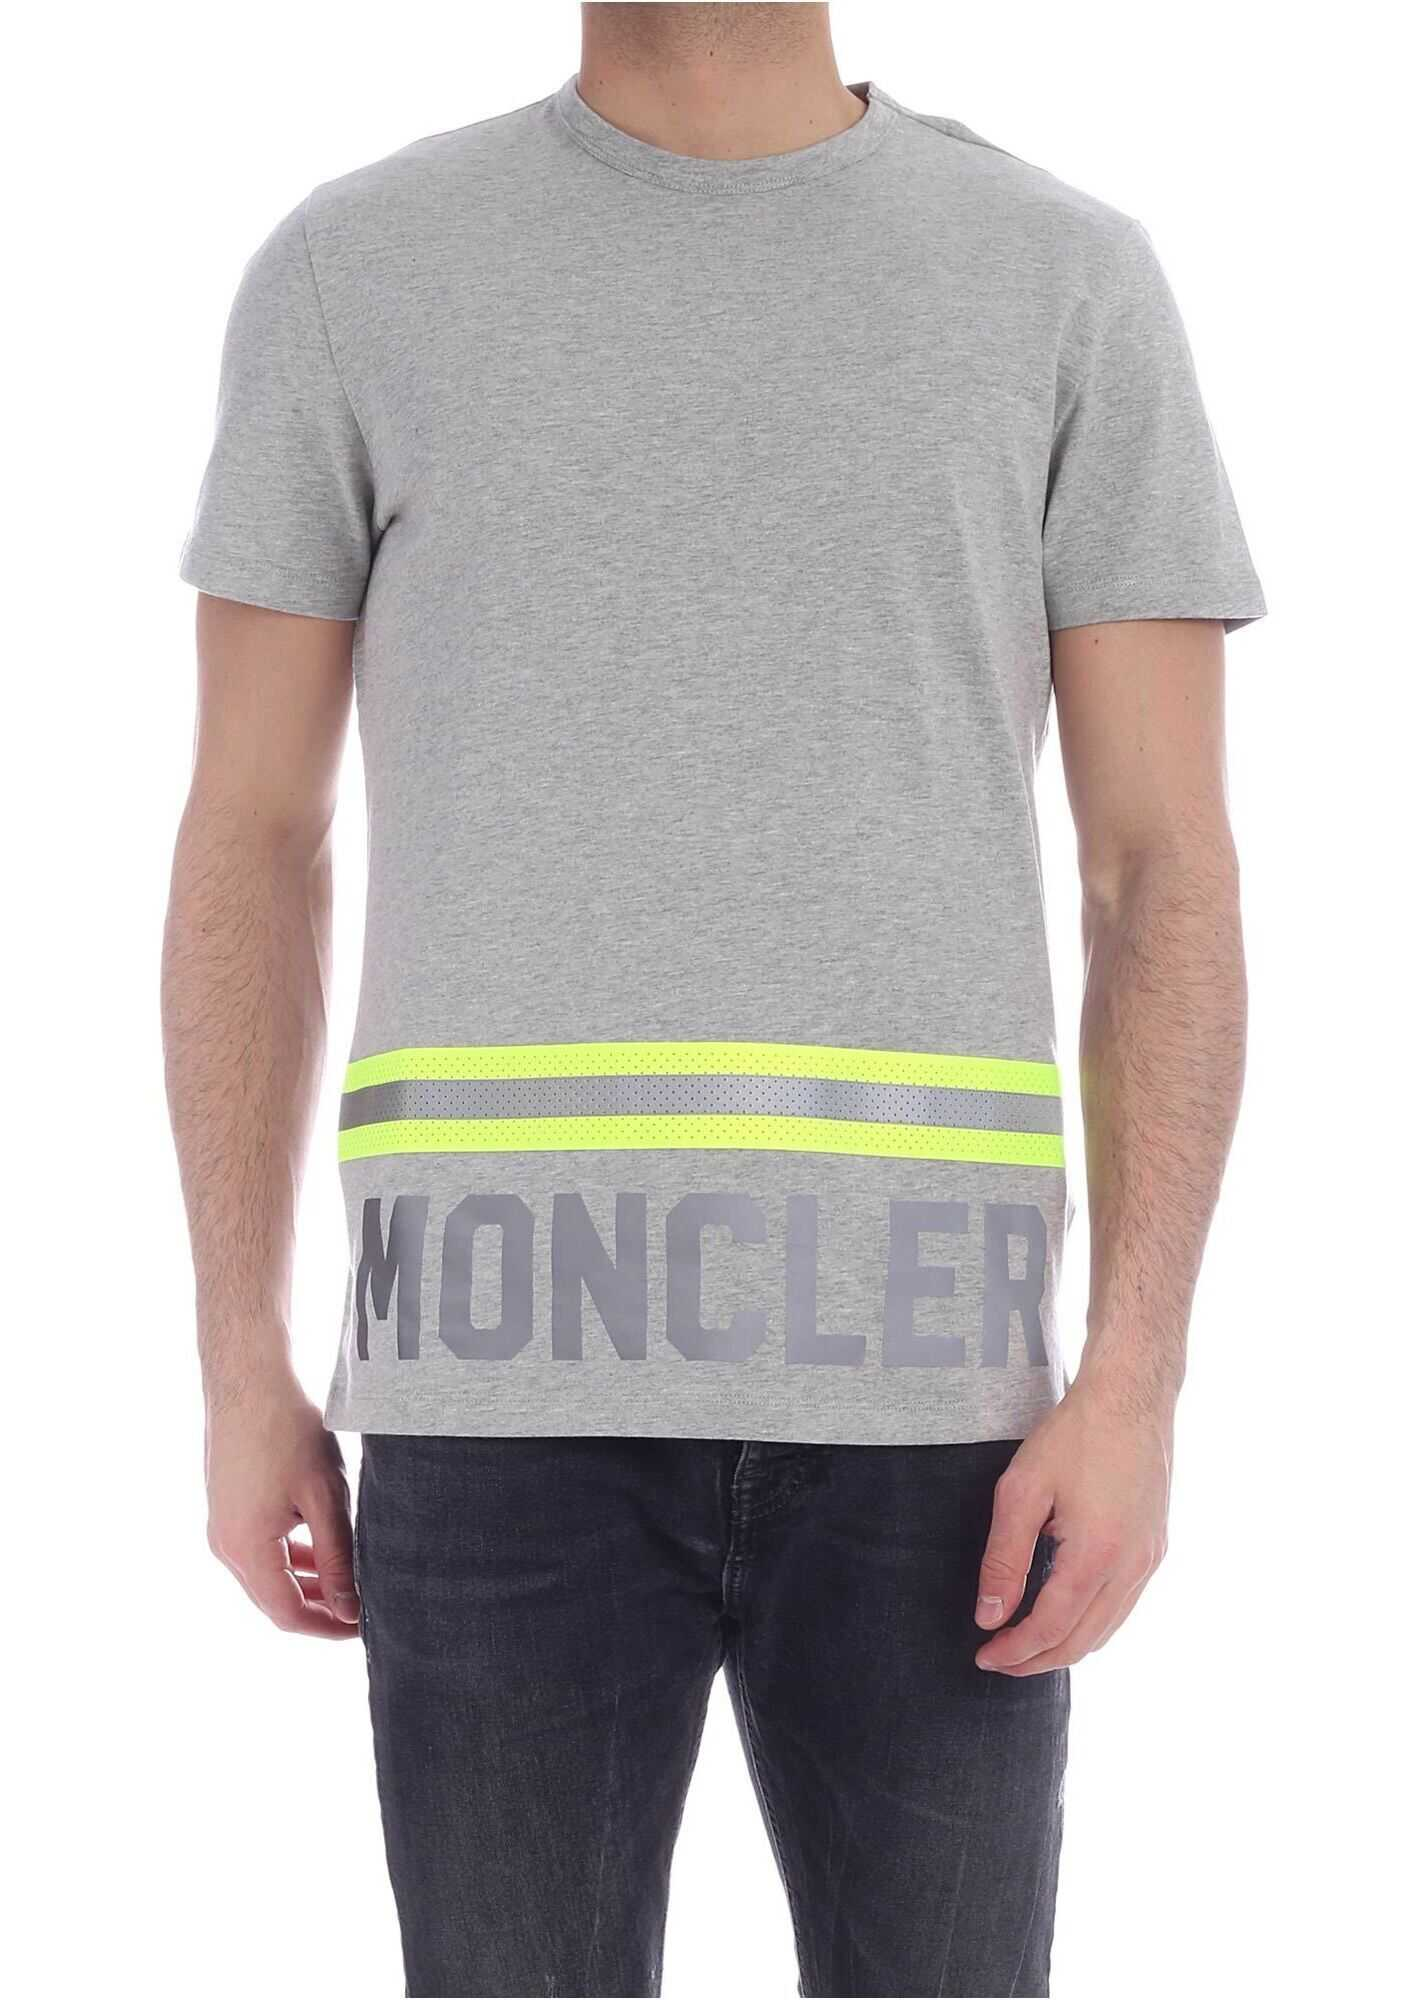 Moncler Fluorescent And Reflective Details T-Shirt In Grey Grey